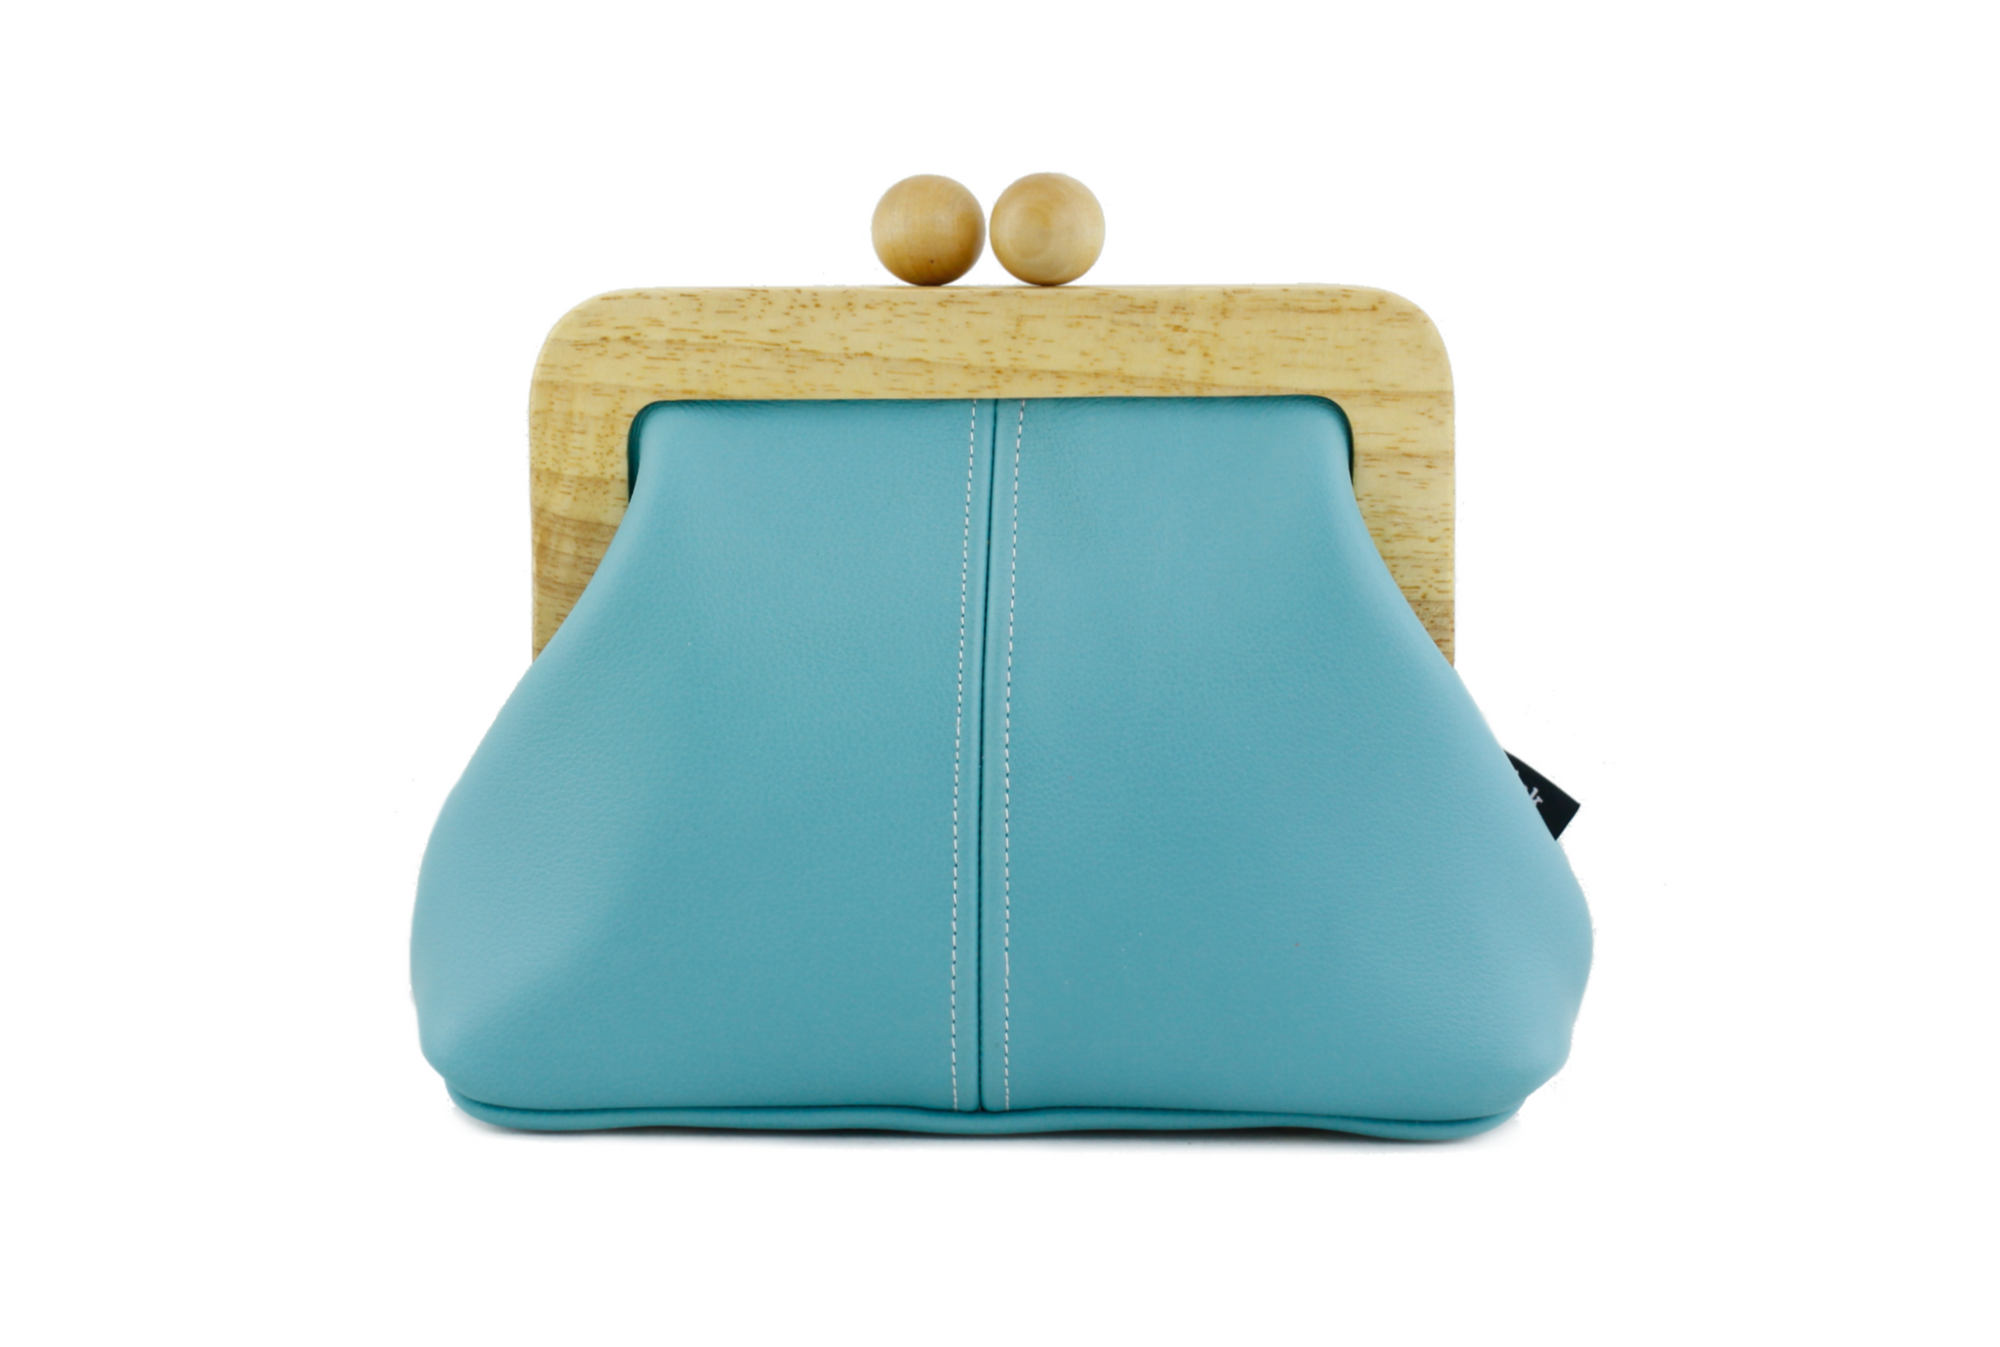 Aqua Blue Genuine Leather Clutch Bag with Strap | PINKOASIS